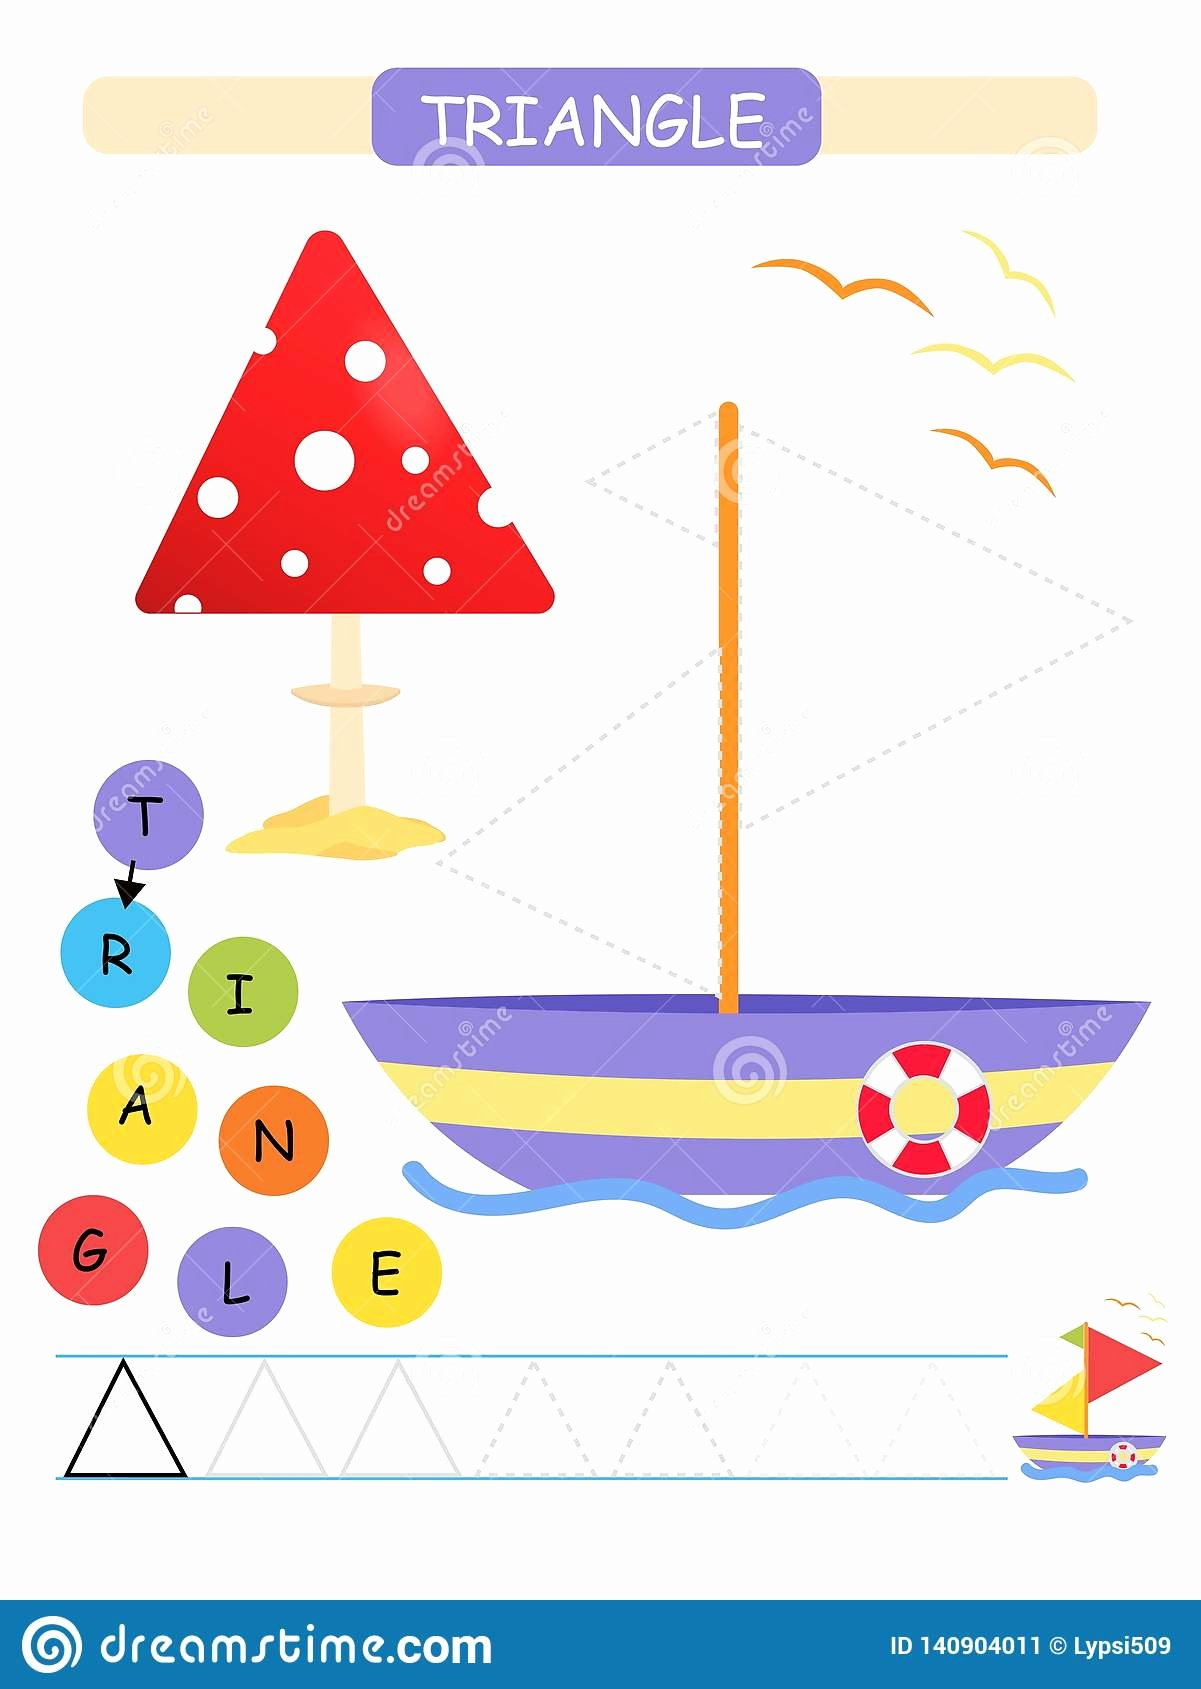 Triangle Printable Worksheets for Preschoolers Fresh Learn Shapes and Geometric Figures for Preschool and